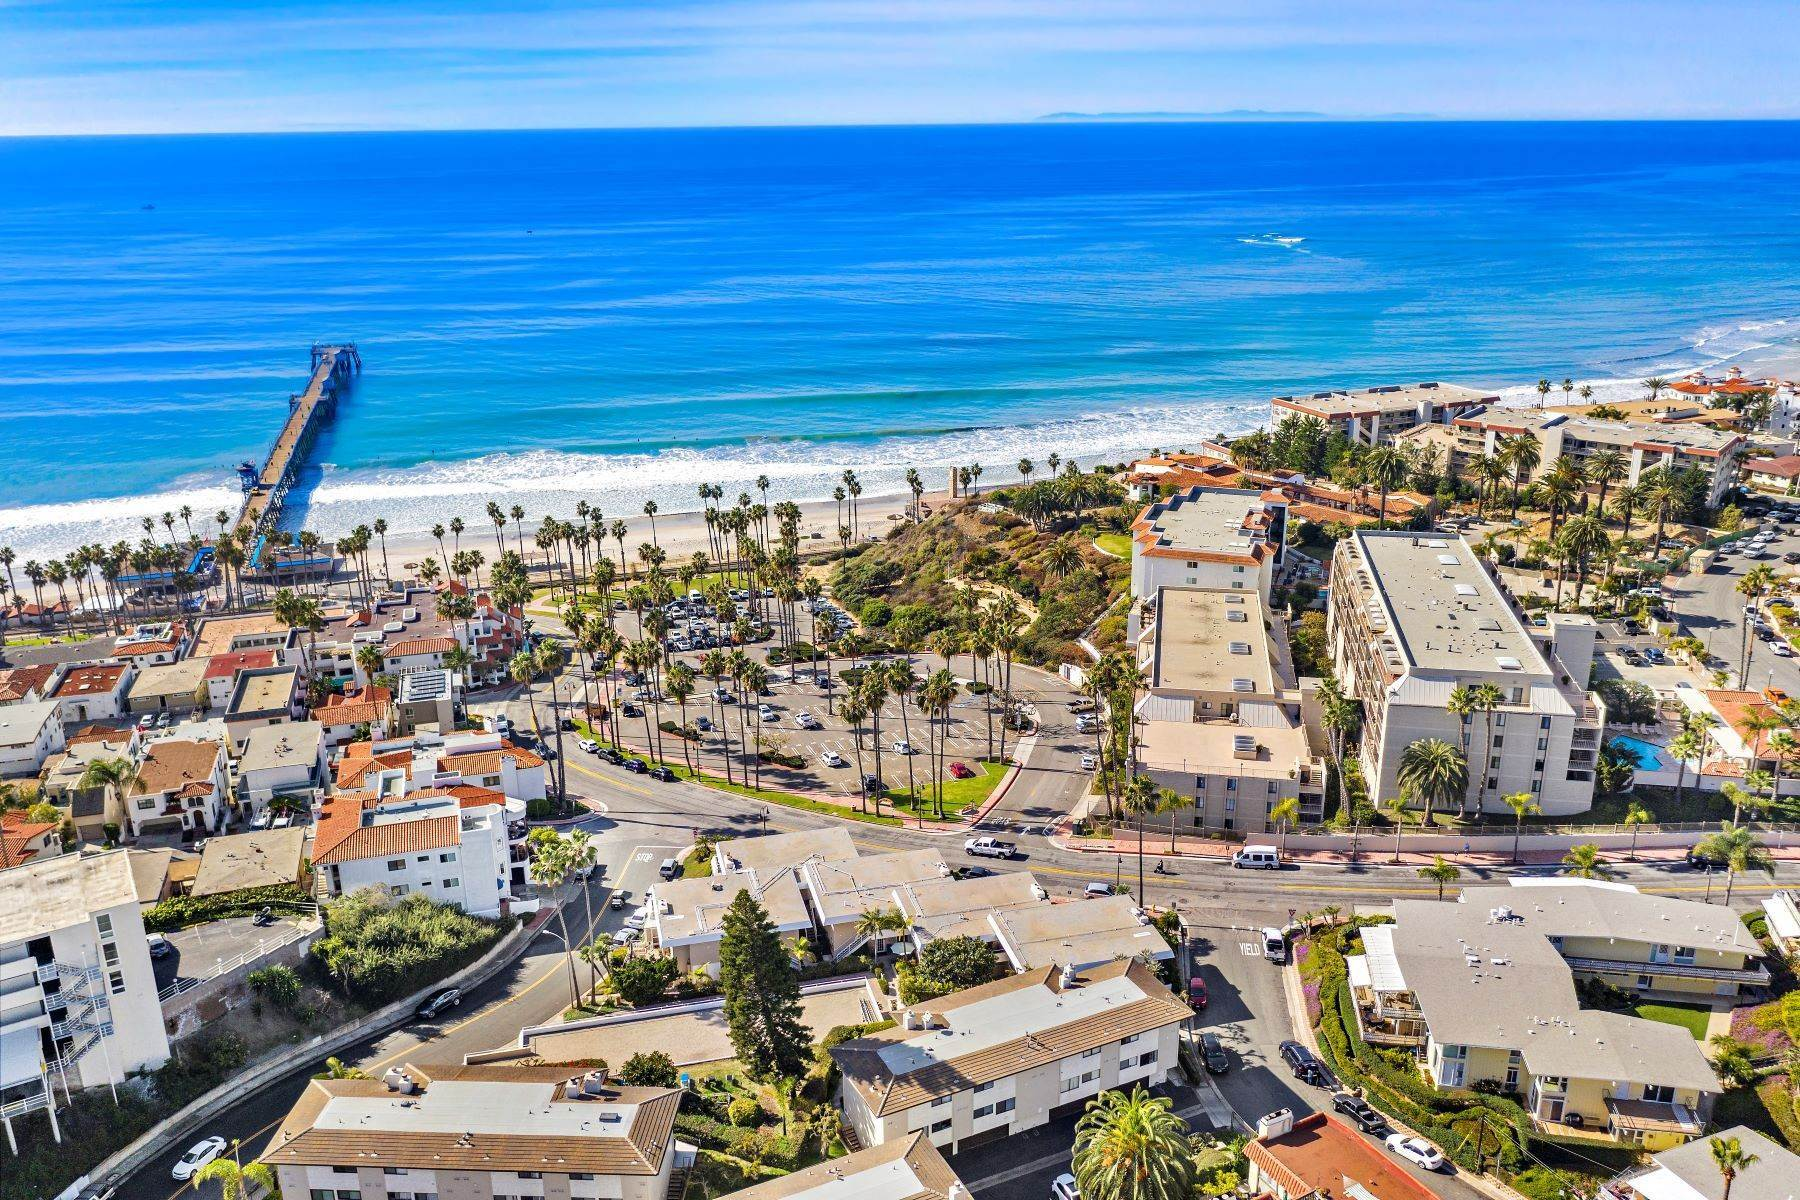 38. Condominiums for Sale at 321 Acebo Lane Unit #C, San Clemente, CA 92672 321 Acebo Lane, Unit #C San Clemente, California 92672 United States